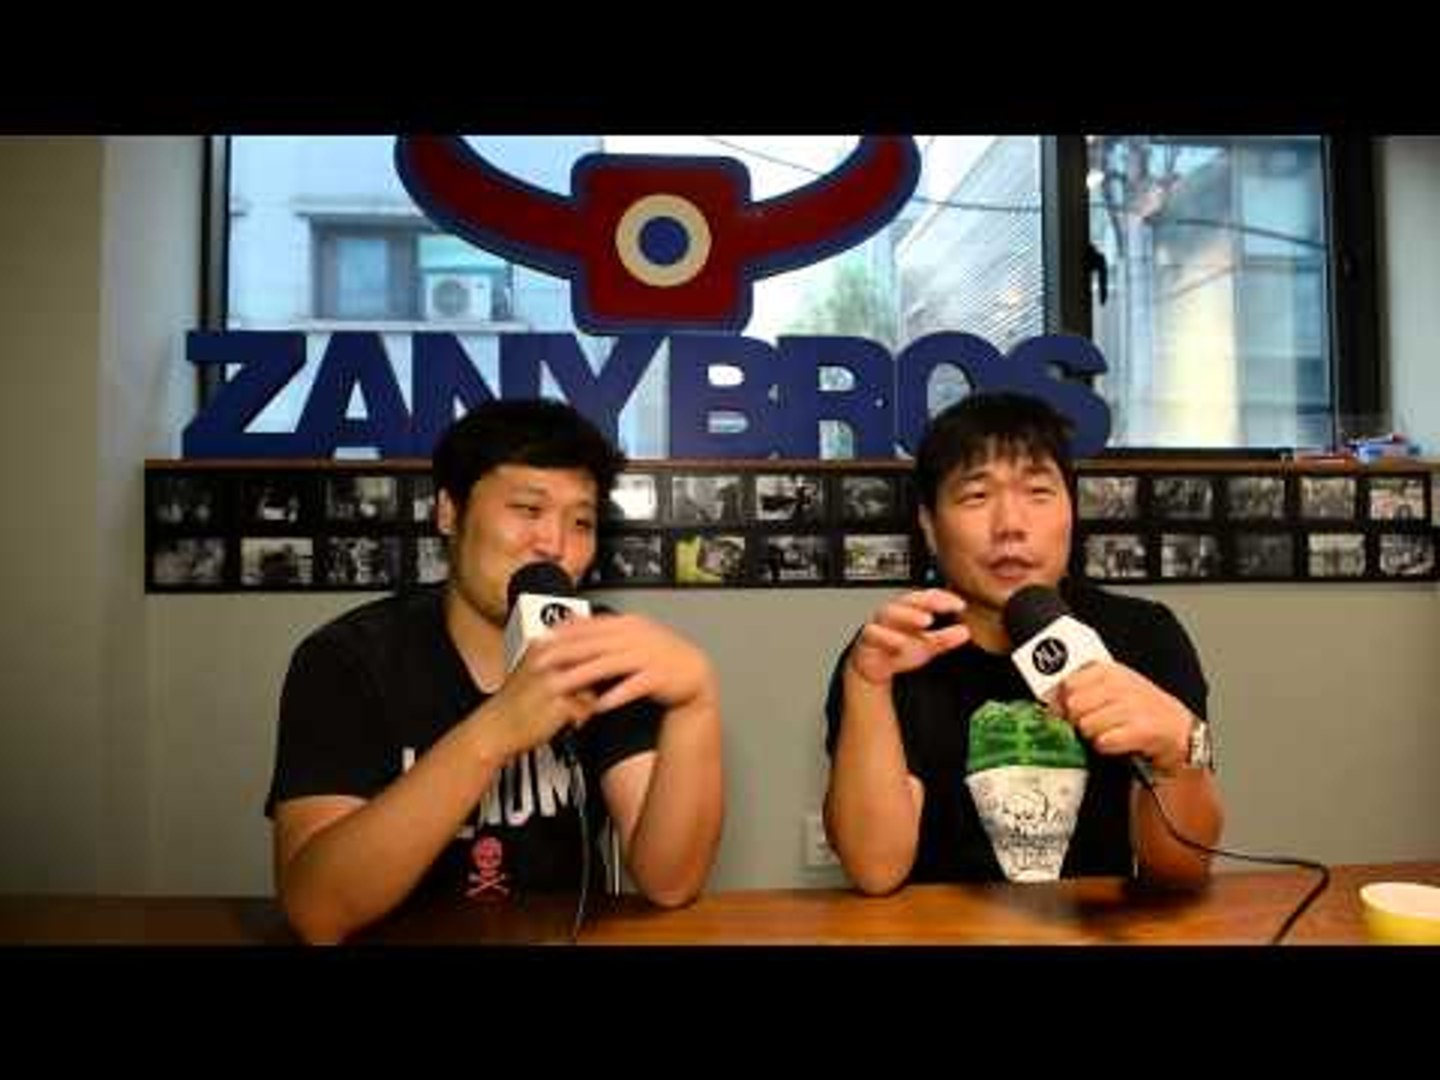 ZanyBros (South Korea) talks about filming K-Pop videos internationally